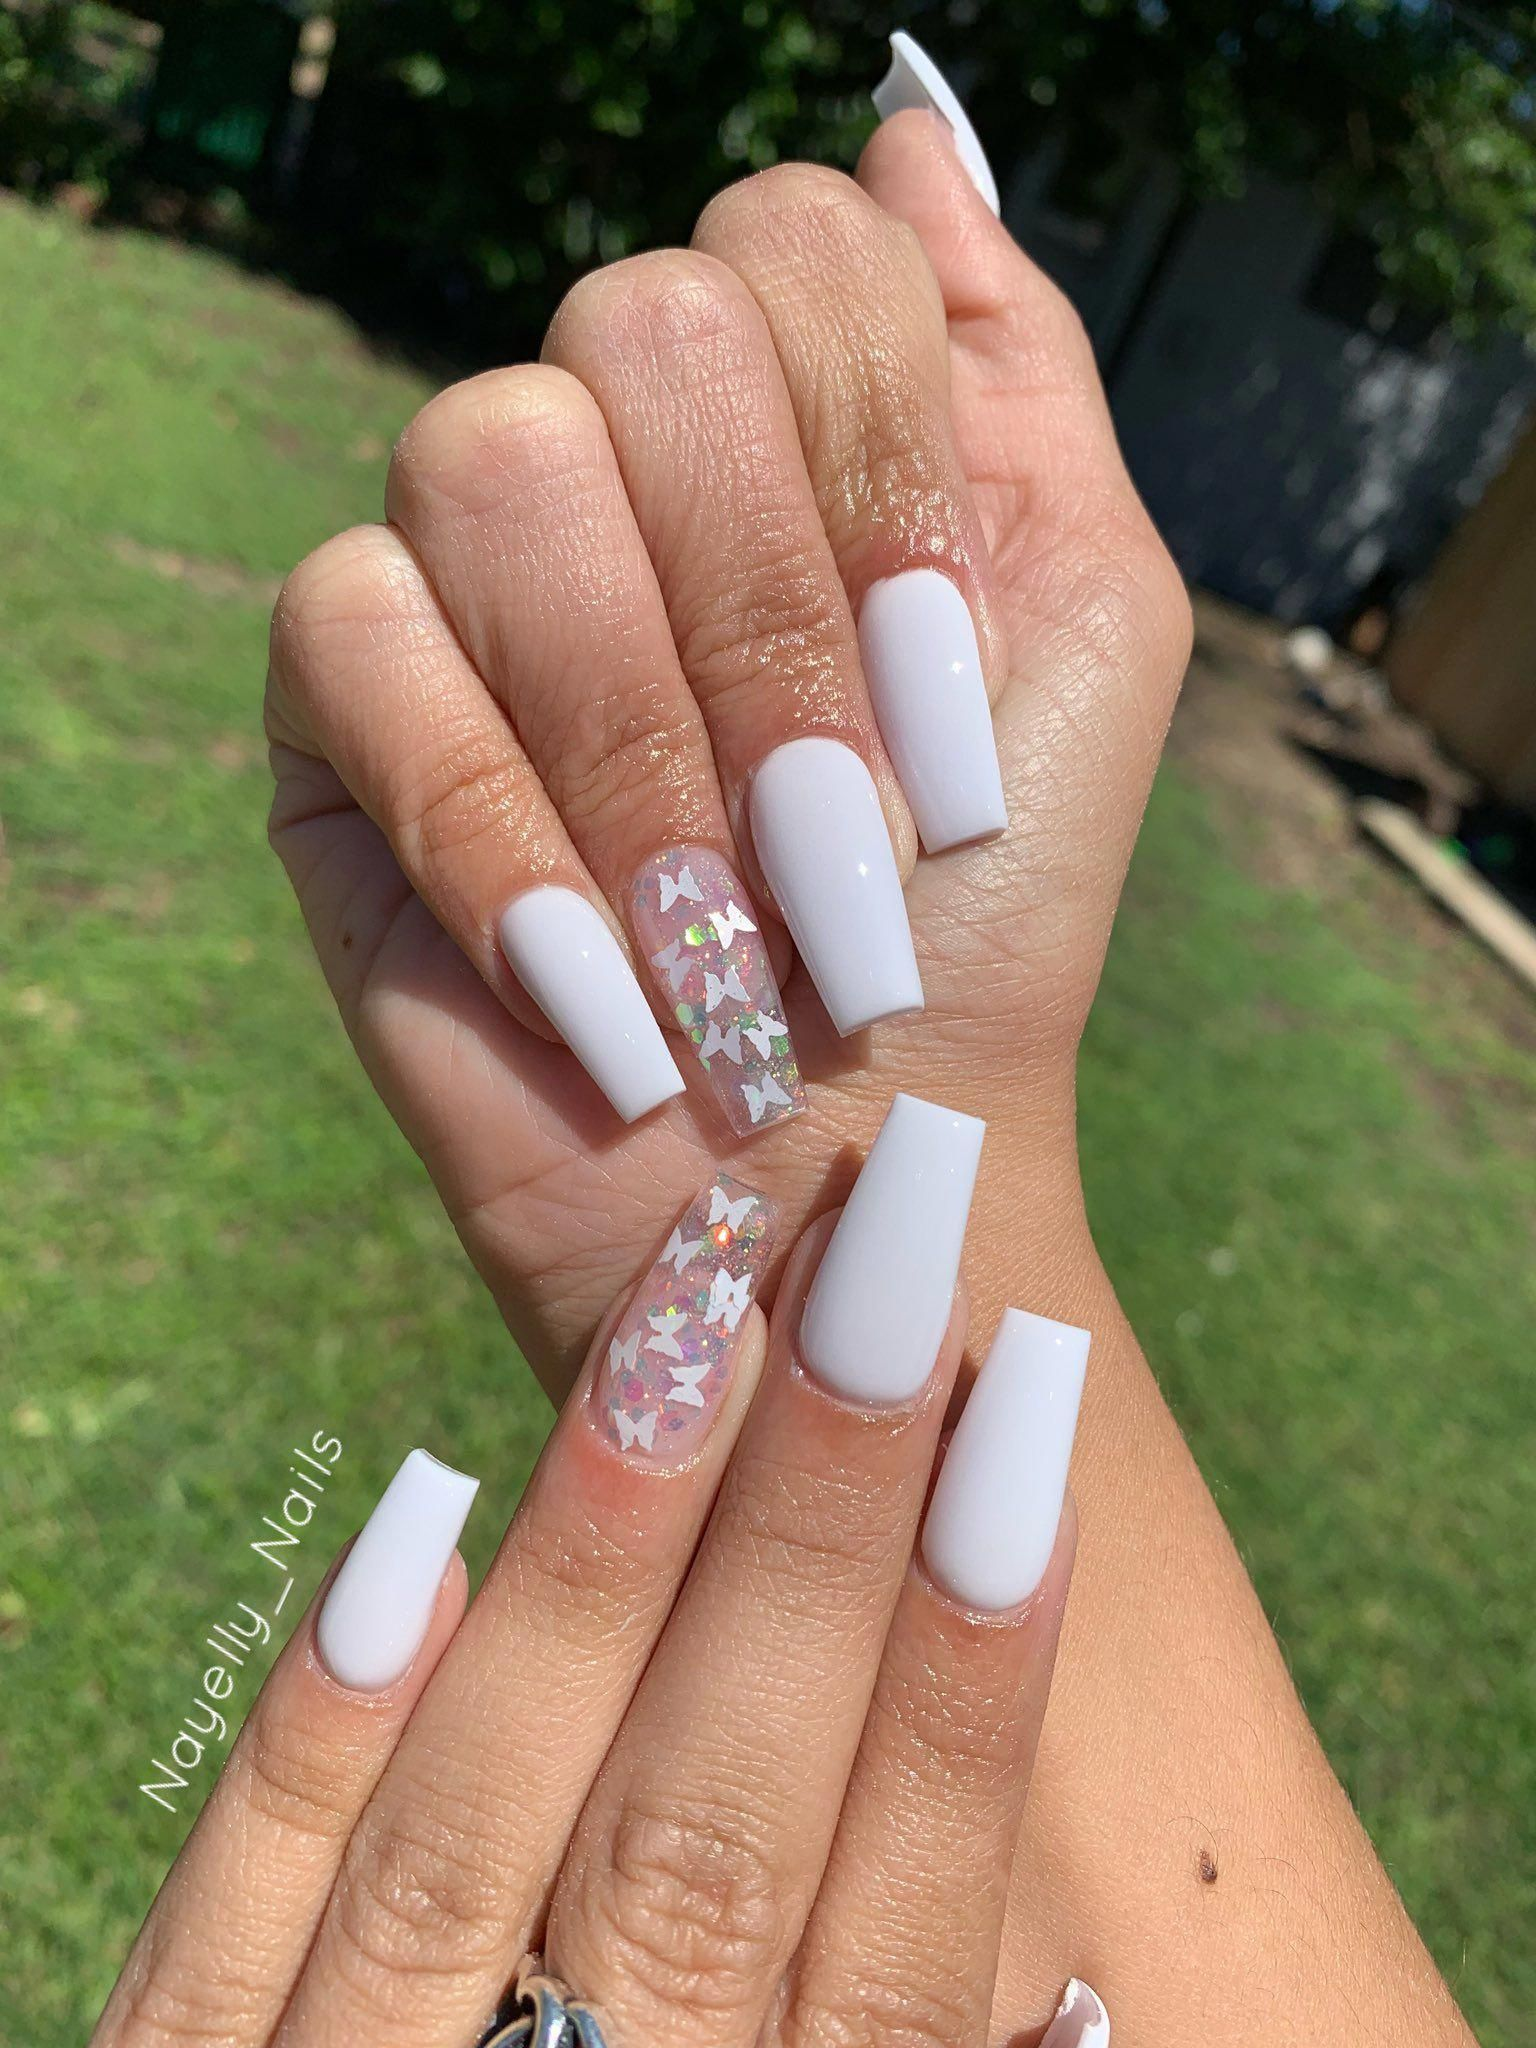 How To Choose Your Fake Nails White Acrylic Nails Swag Nails Fire Nails